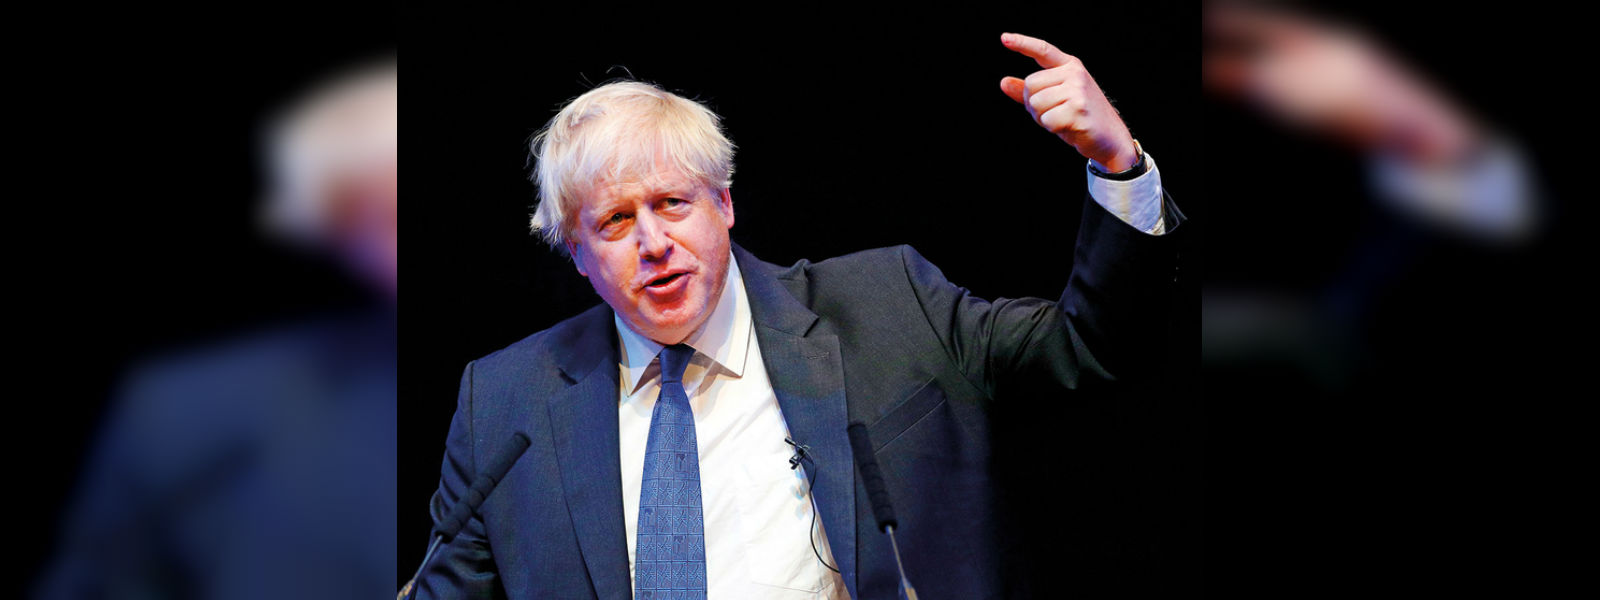 UK PM candidate Johnson: Britain must leave EU by Oct. 31 or pay the price